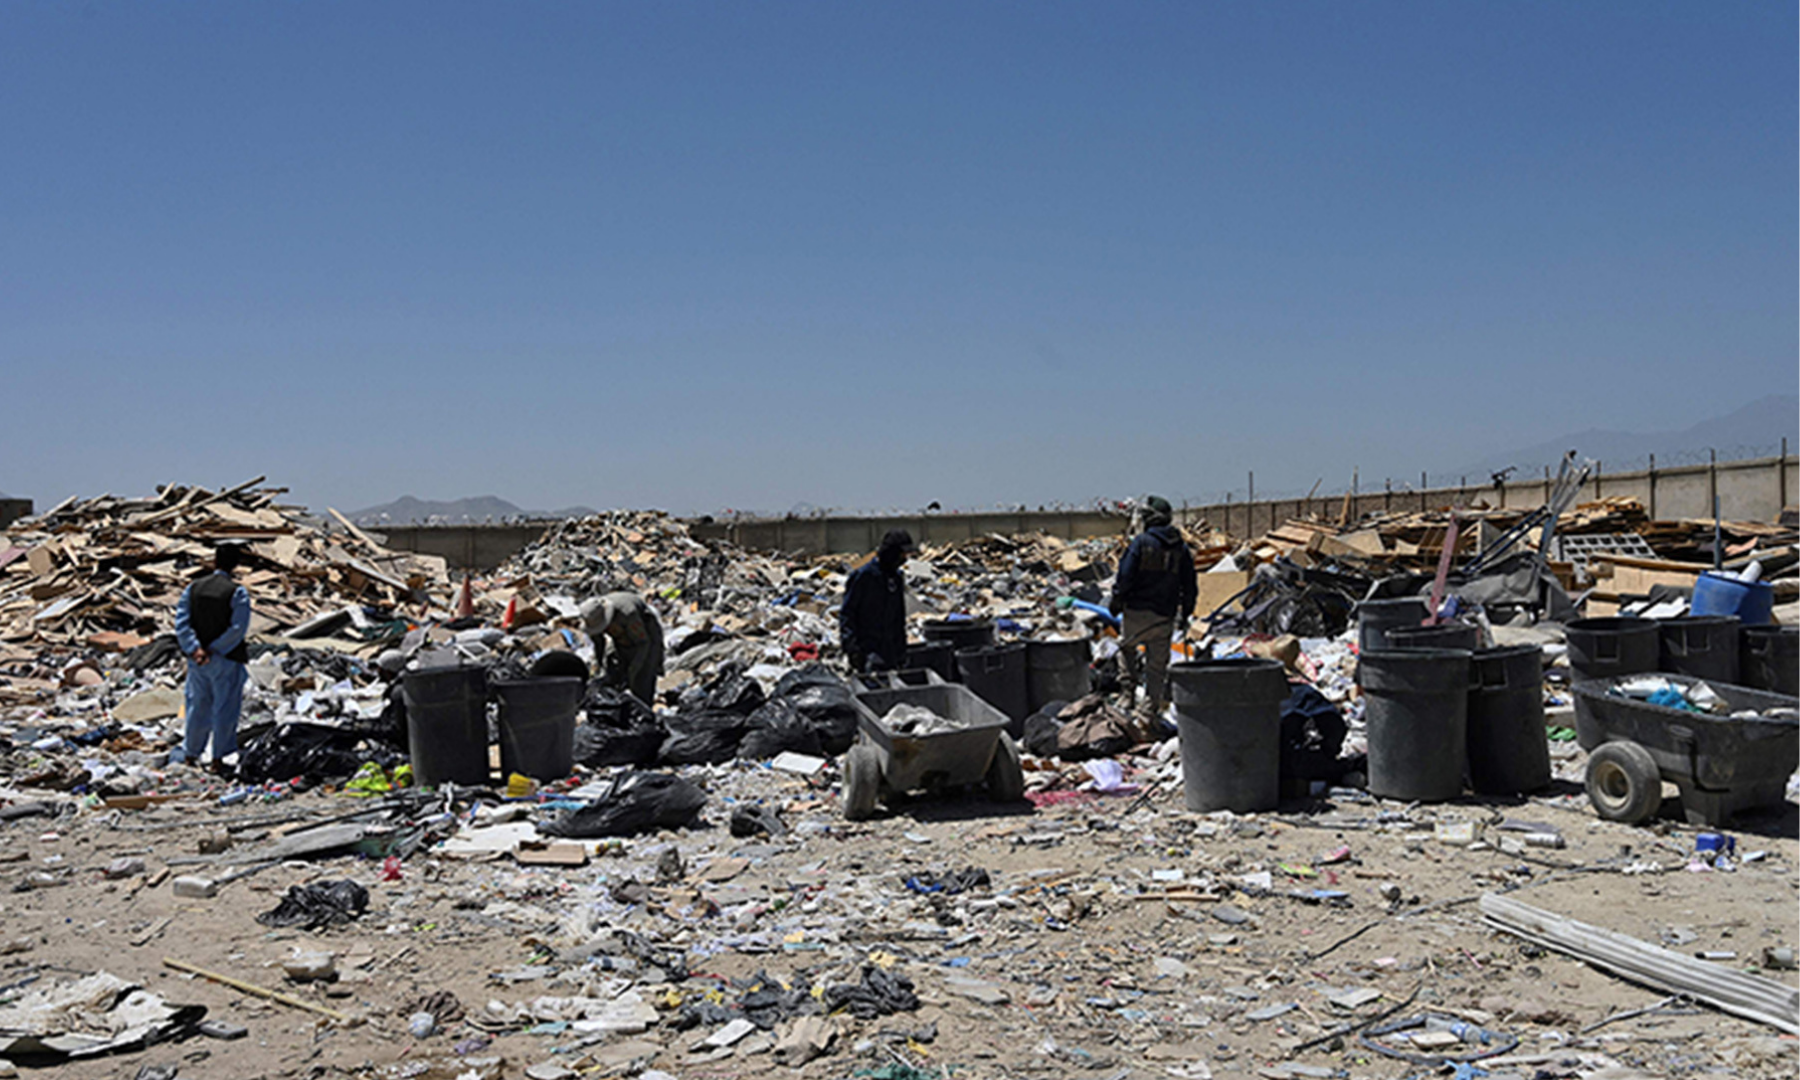 People look for useable items at a junkyard near the Bagram Airbase in Bagram. — AFP